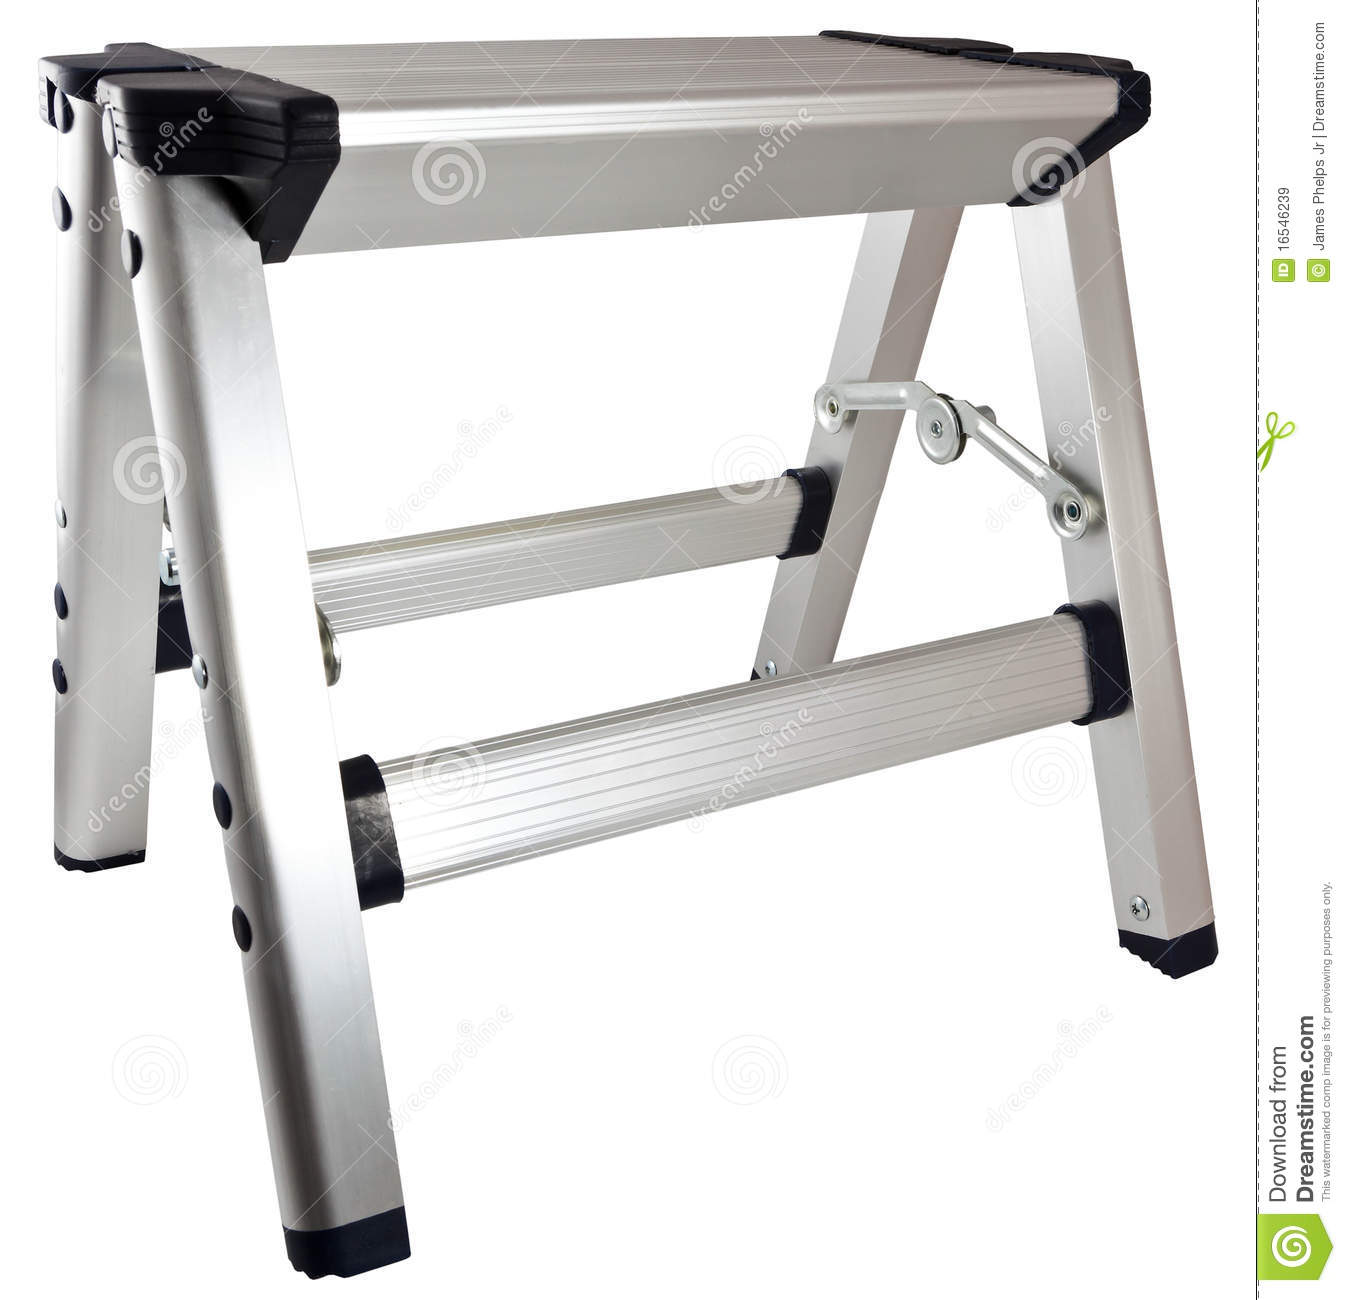 aluminum household ladder small step stool ...  sc 1 st  Dreamstime.com & Aluminum Step Stool Ladder Royalty Free Stock Images - Image: 16546239 islam-shia.org